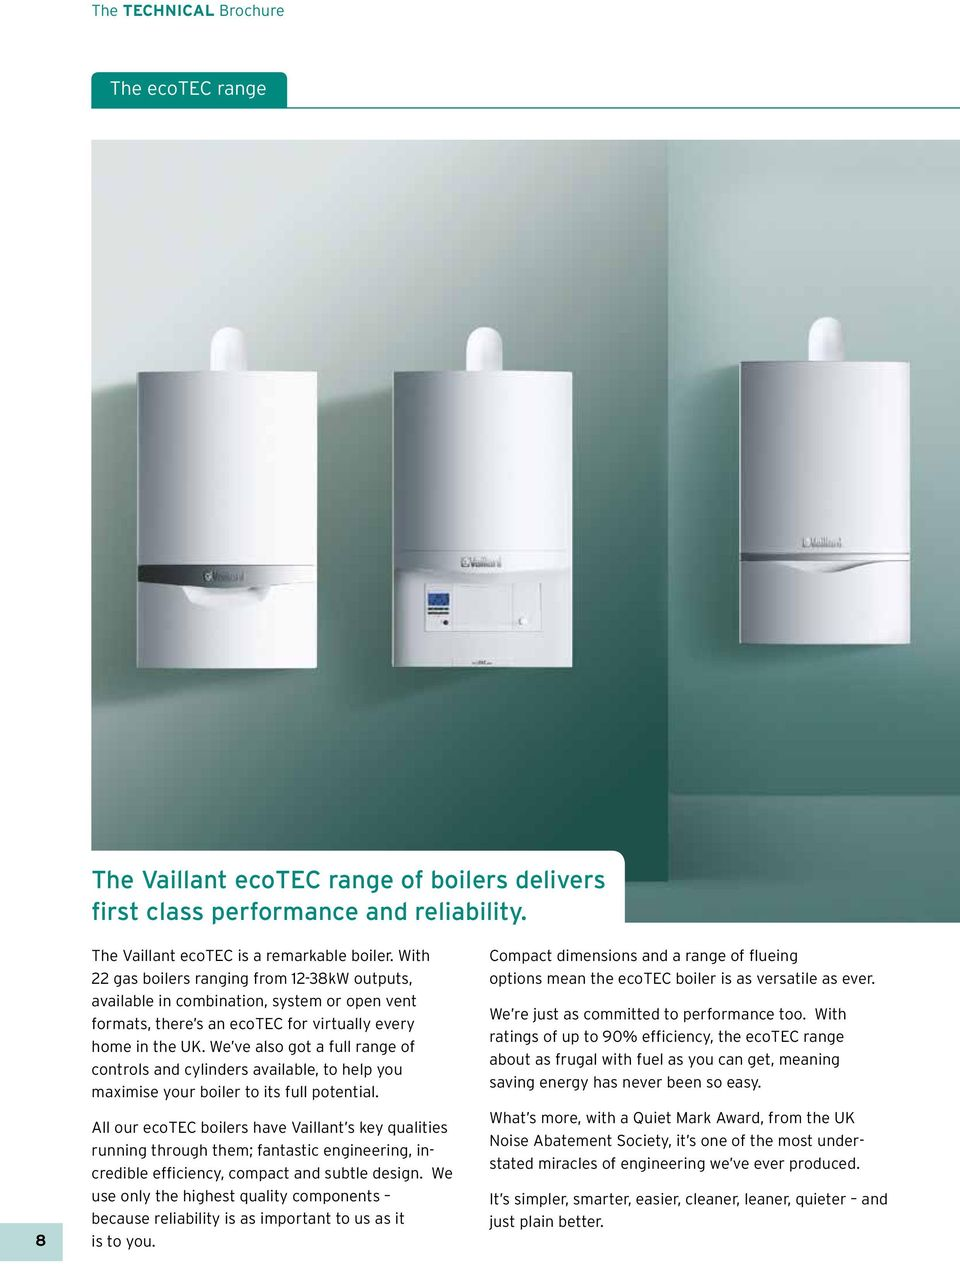 Why Vaillant? Because the ecotec delivers day in, day out. Vaillant ...